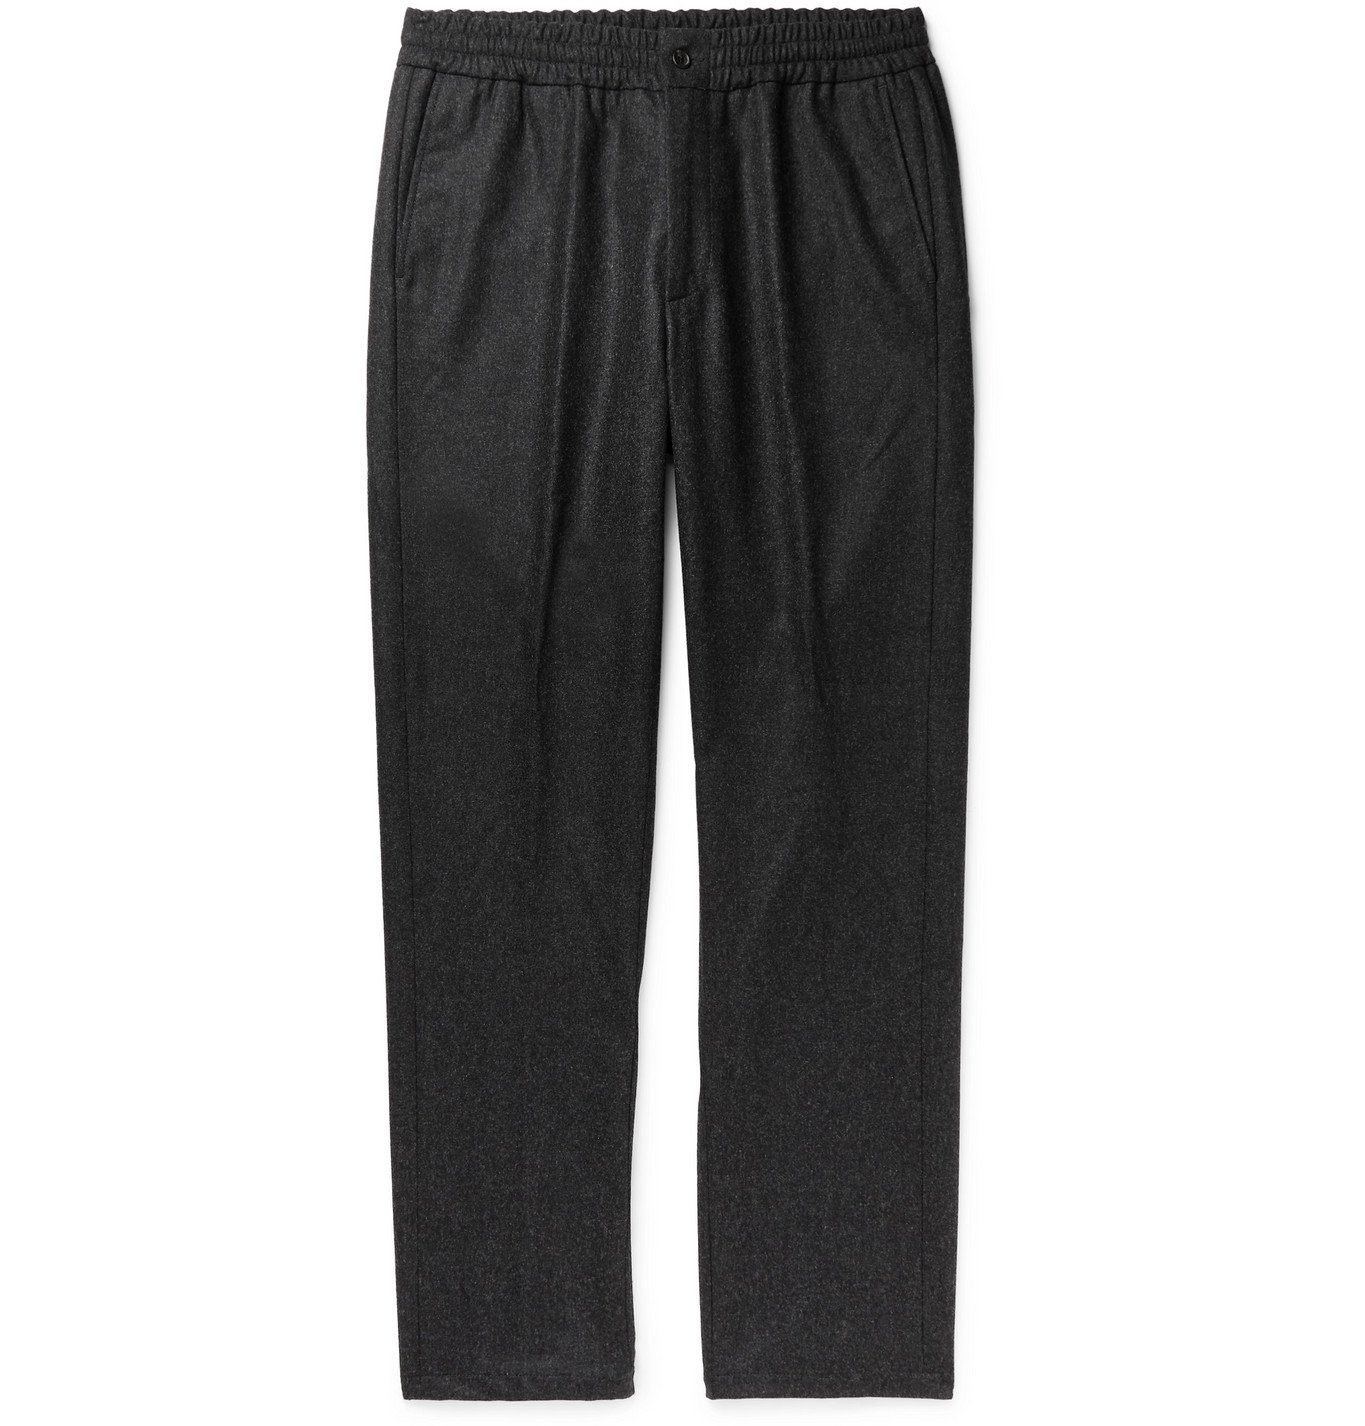 Dunhill - Wool Trousers - Gray